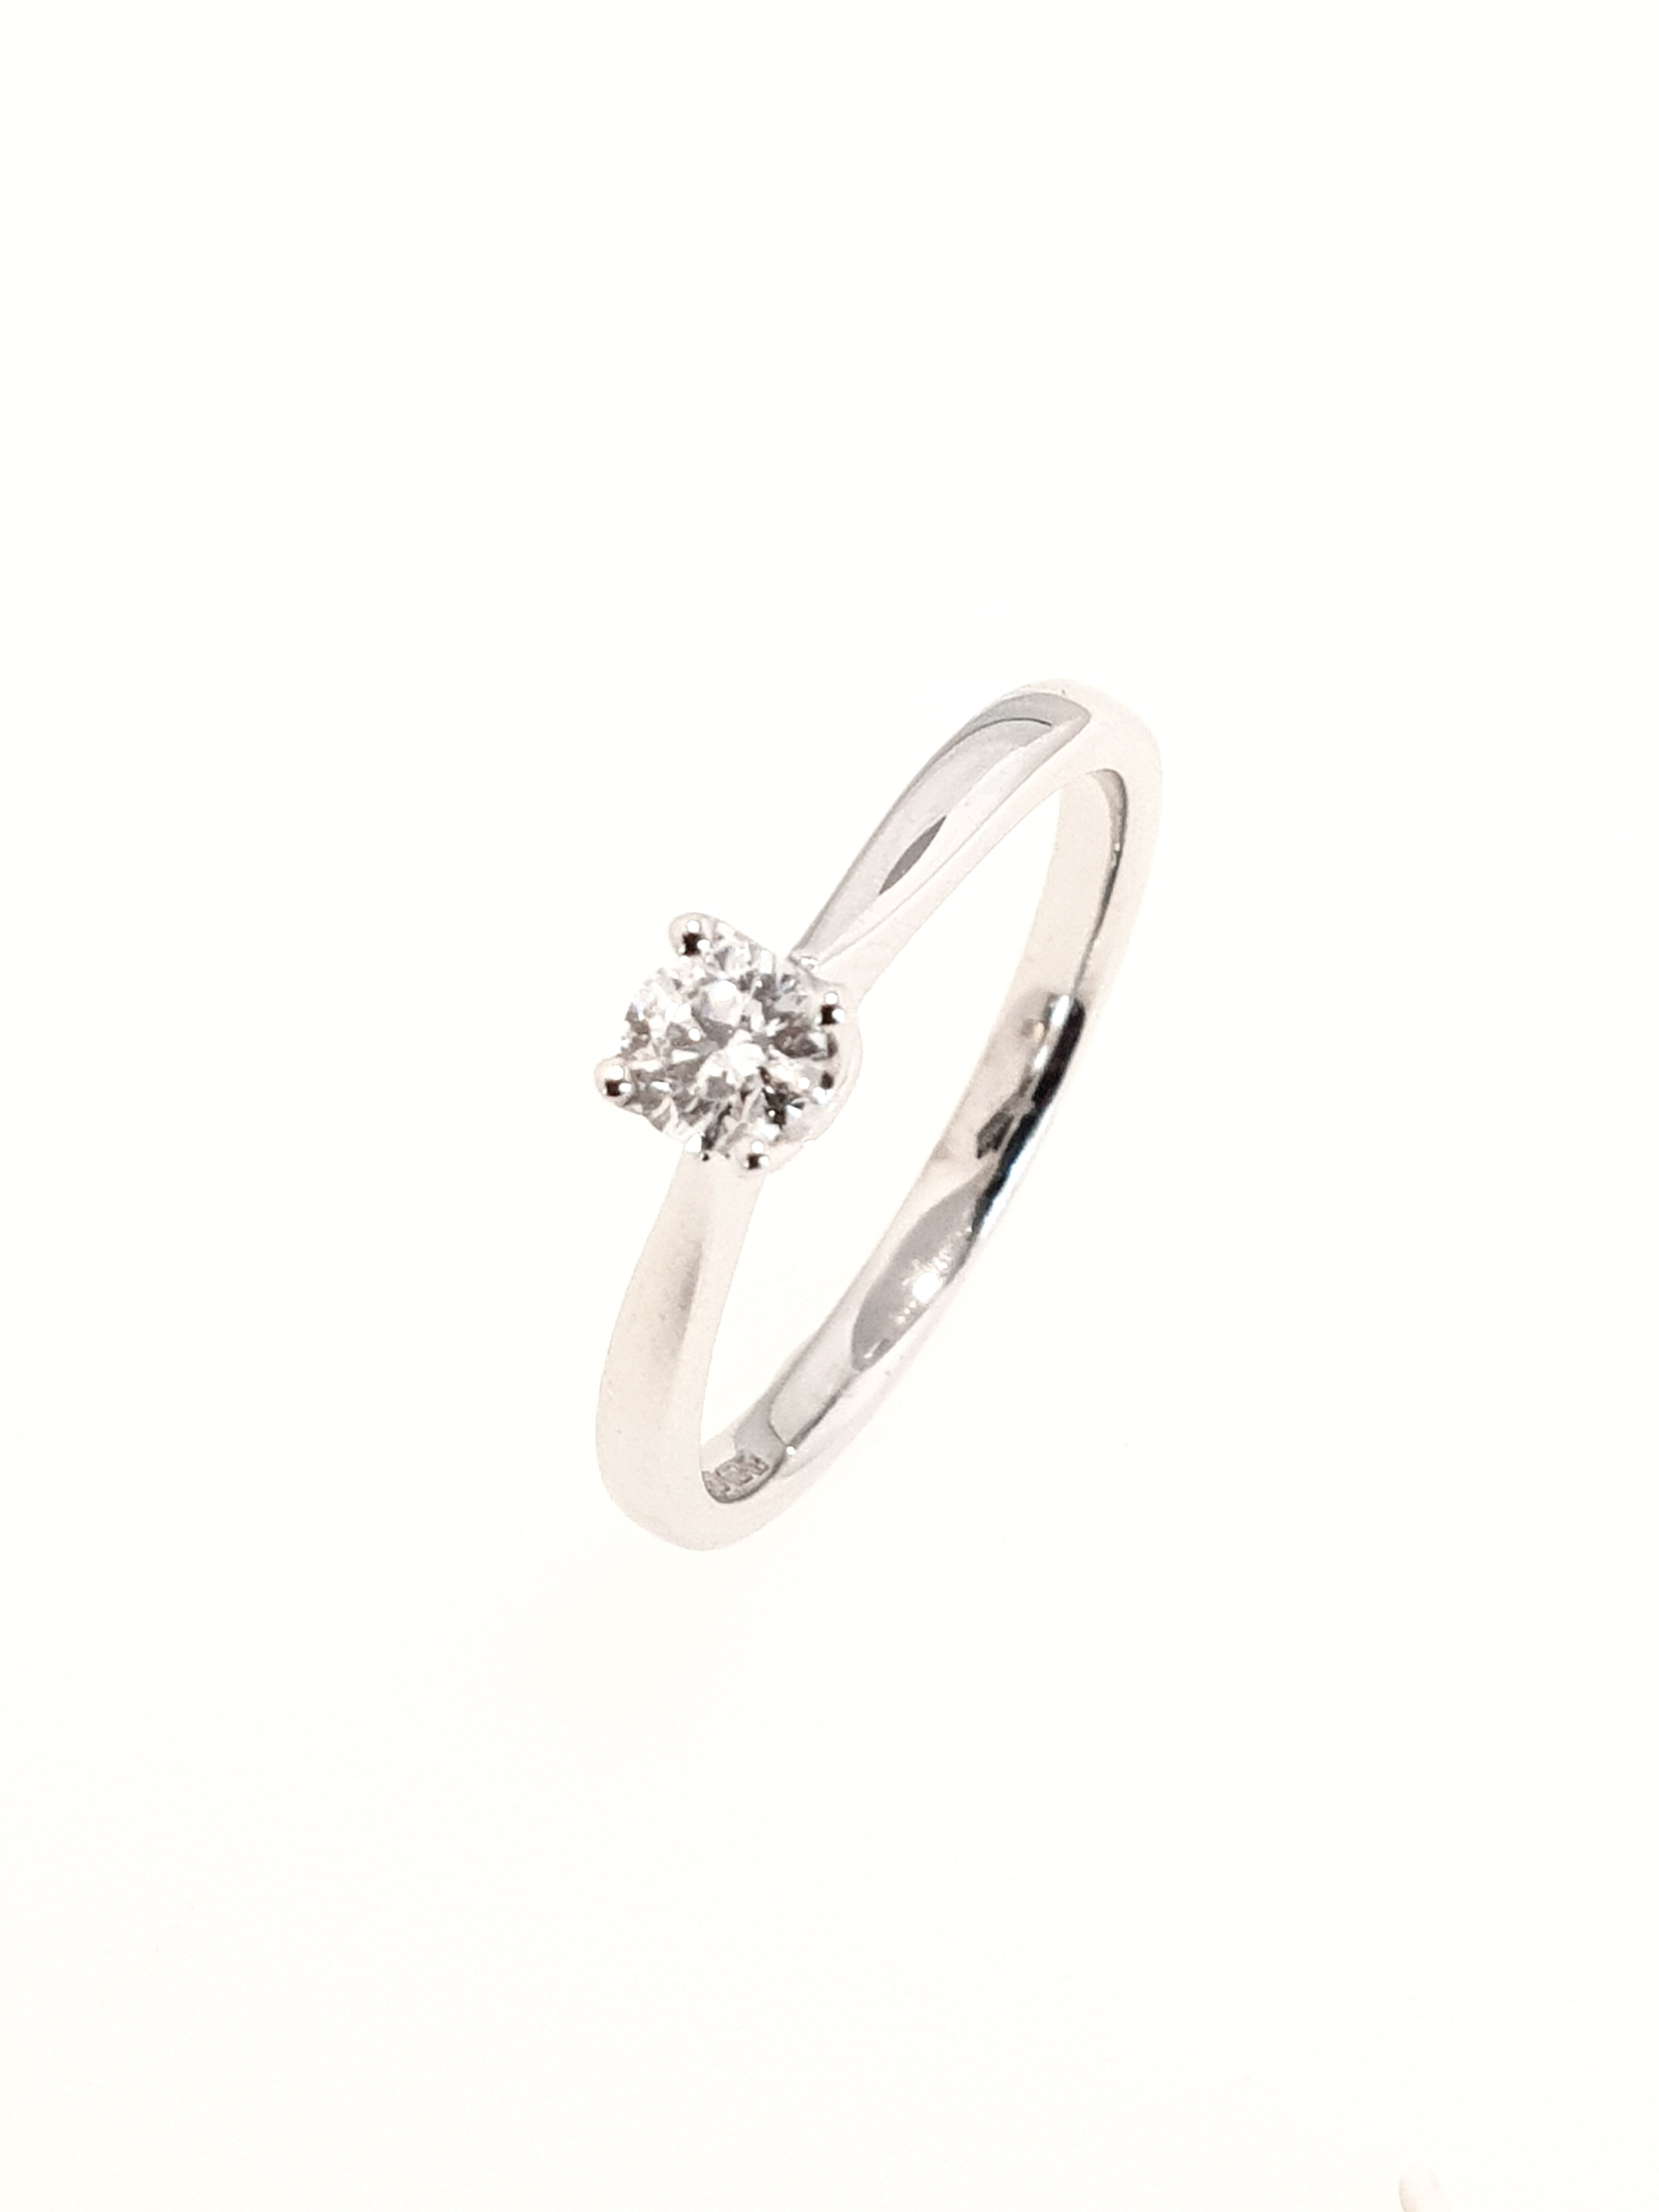 18ct White Gold Diamond Ring, Brilliant Cut  SOLD   .25ct, H, Si1  Stock Code: N8770  £1120